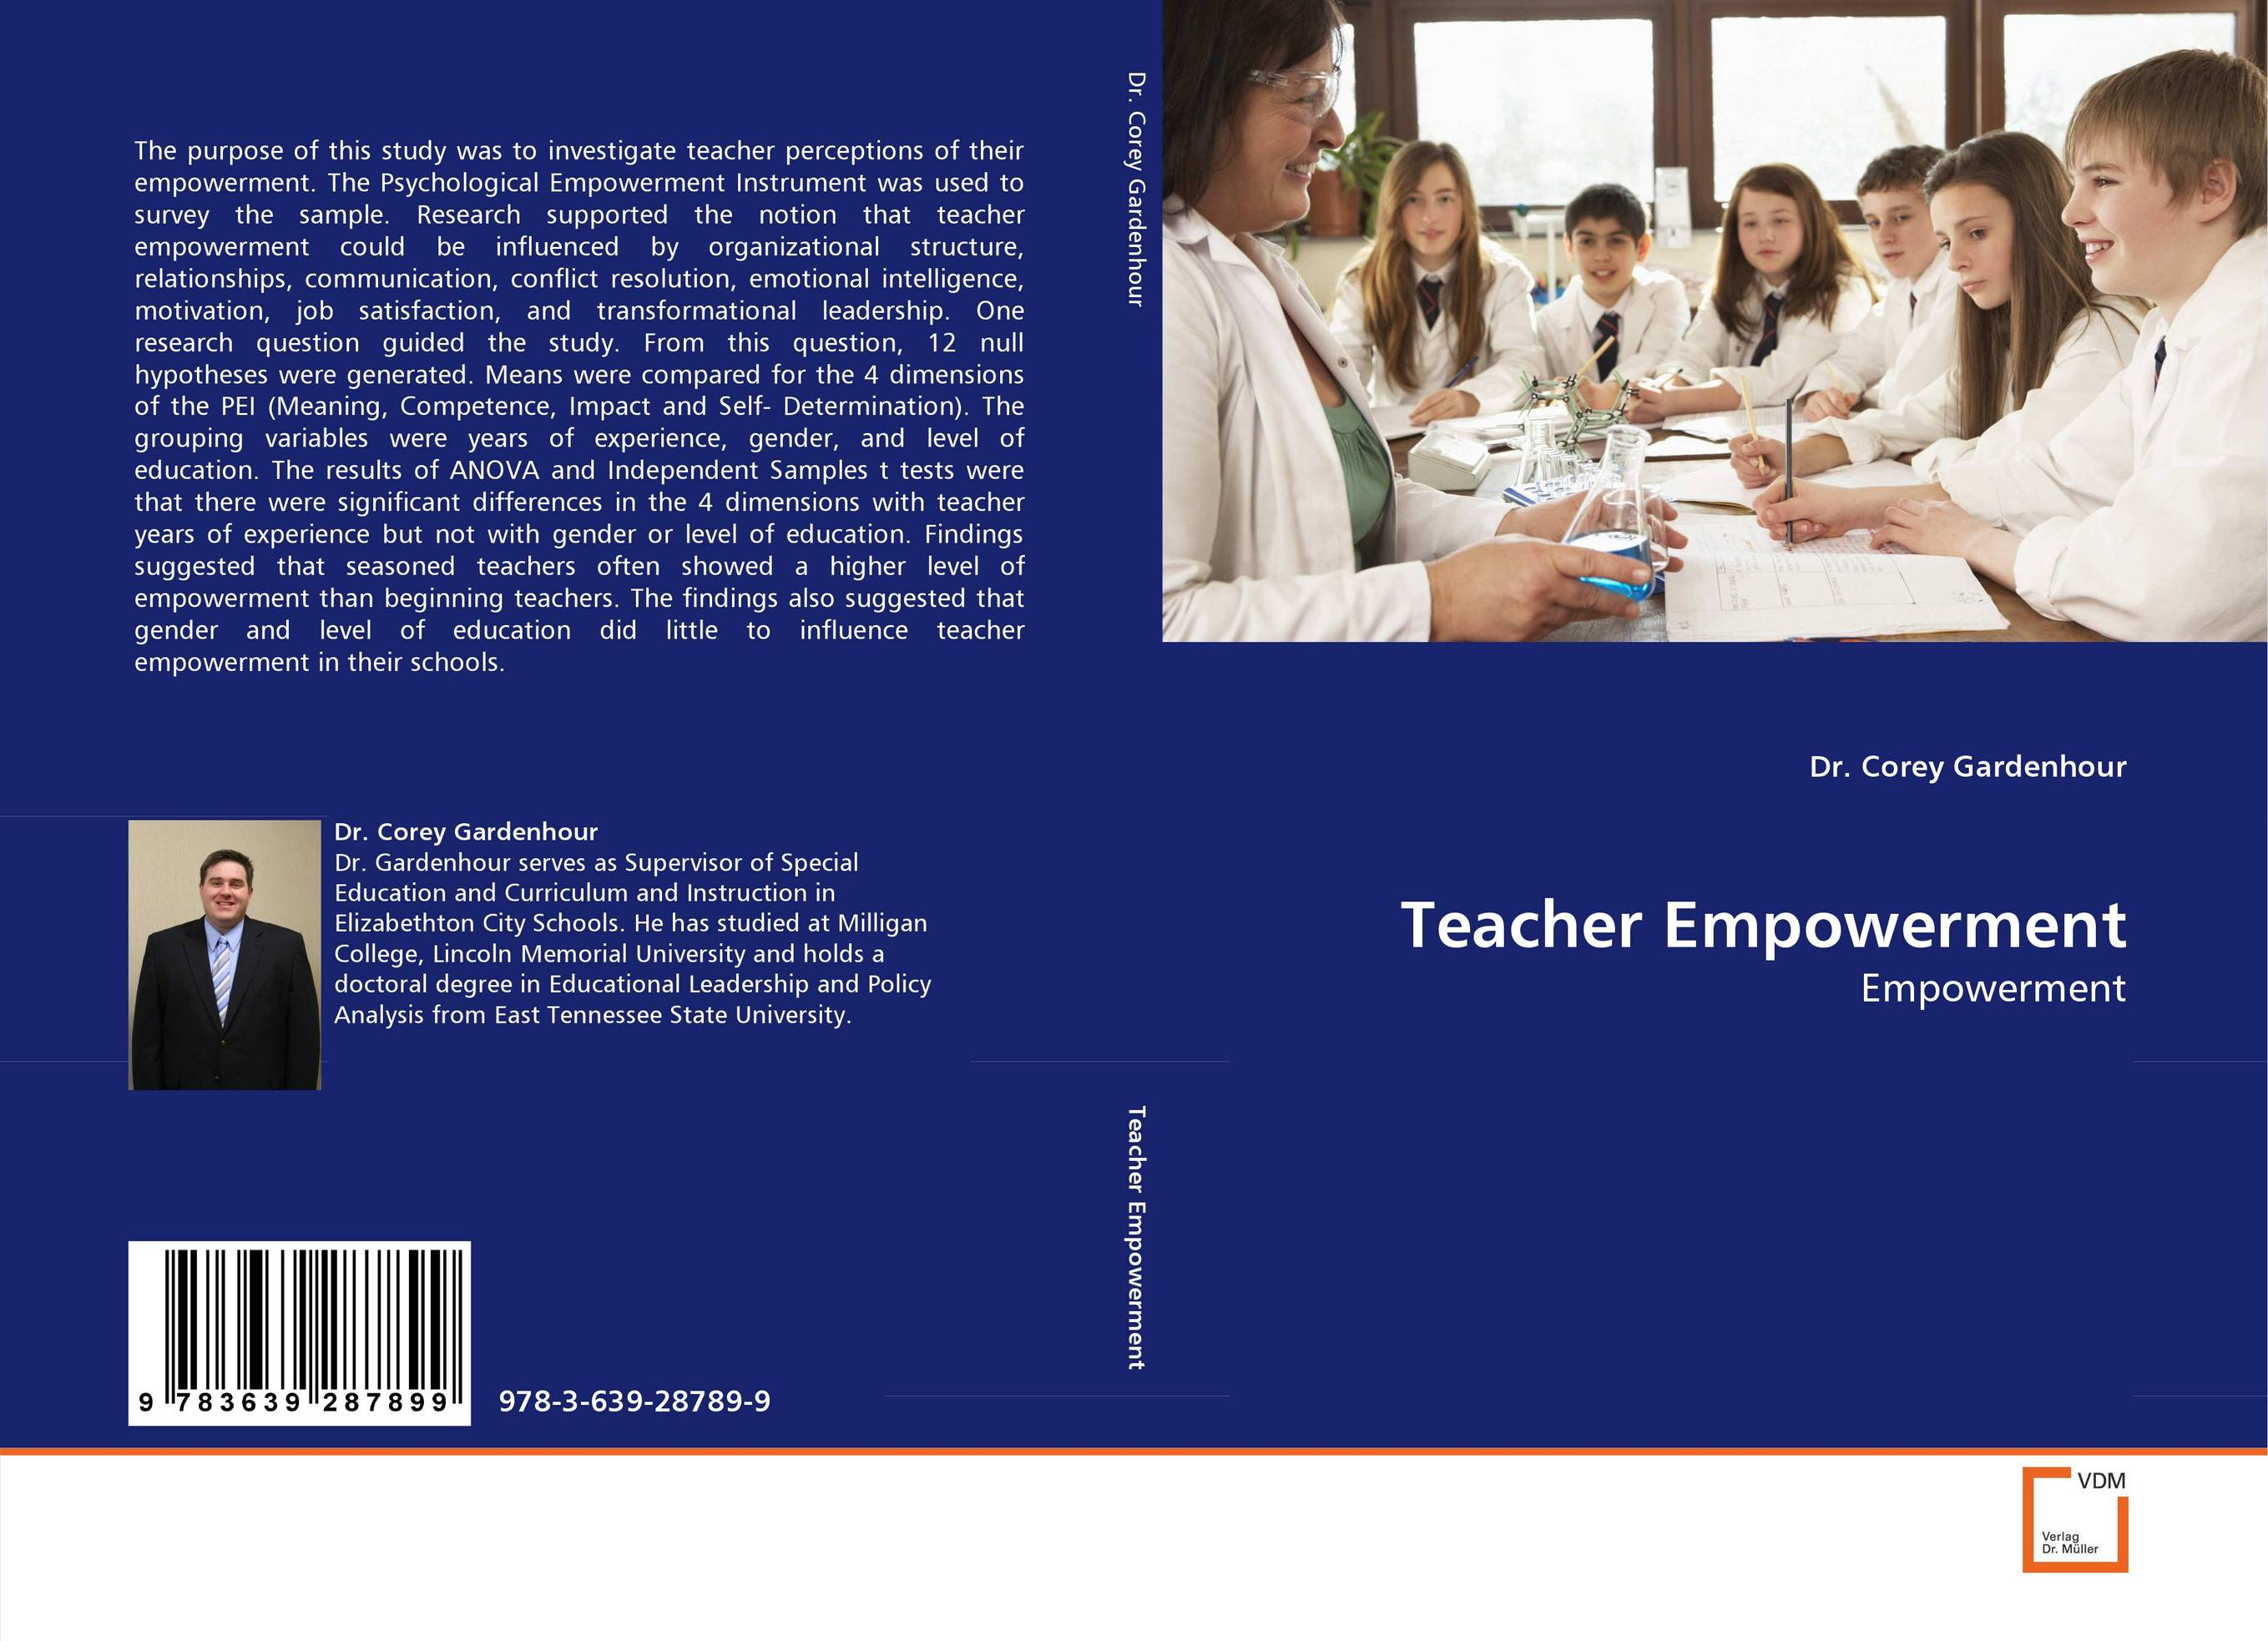 thesis on teacher empowerment Abstract of thesis entitled teacher participation and empowerment: the cases of hong kong and taiwan submitted by wong wai kwok for the degree of doctor of philosophy.